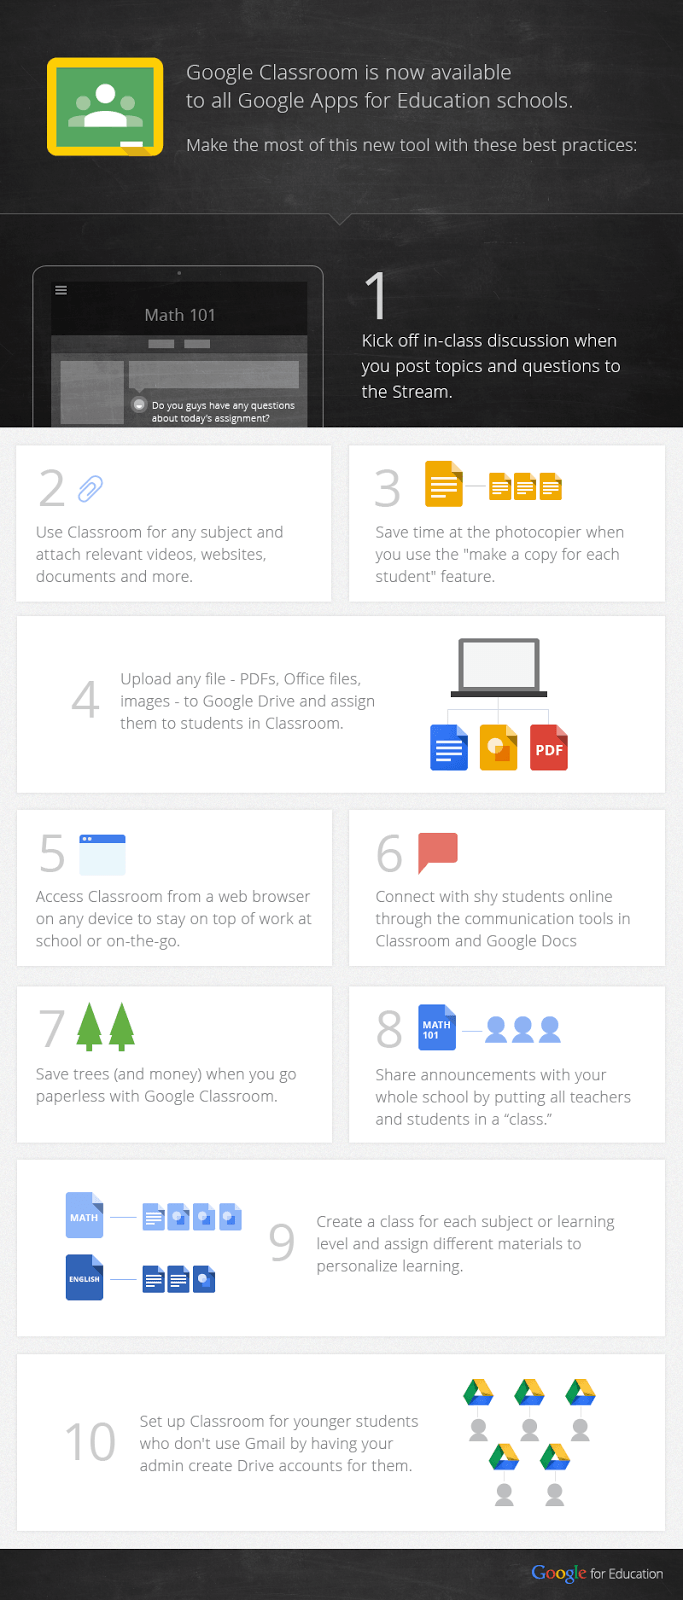 10 Tips To Use Google Classroom Effectively Infographic